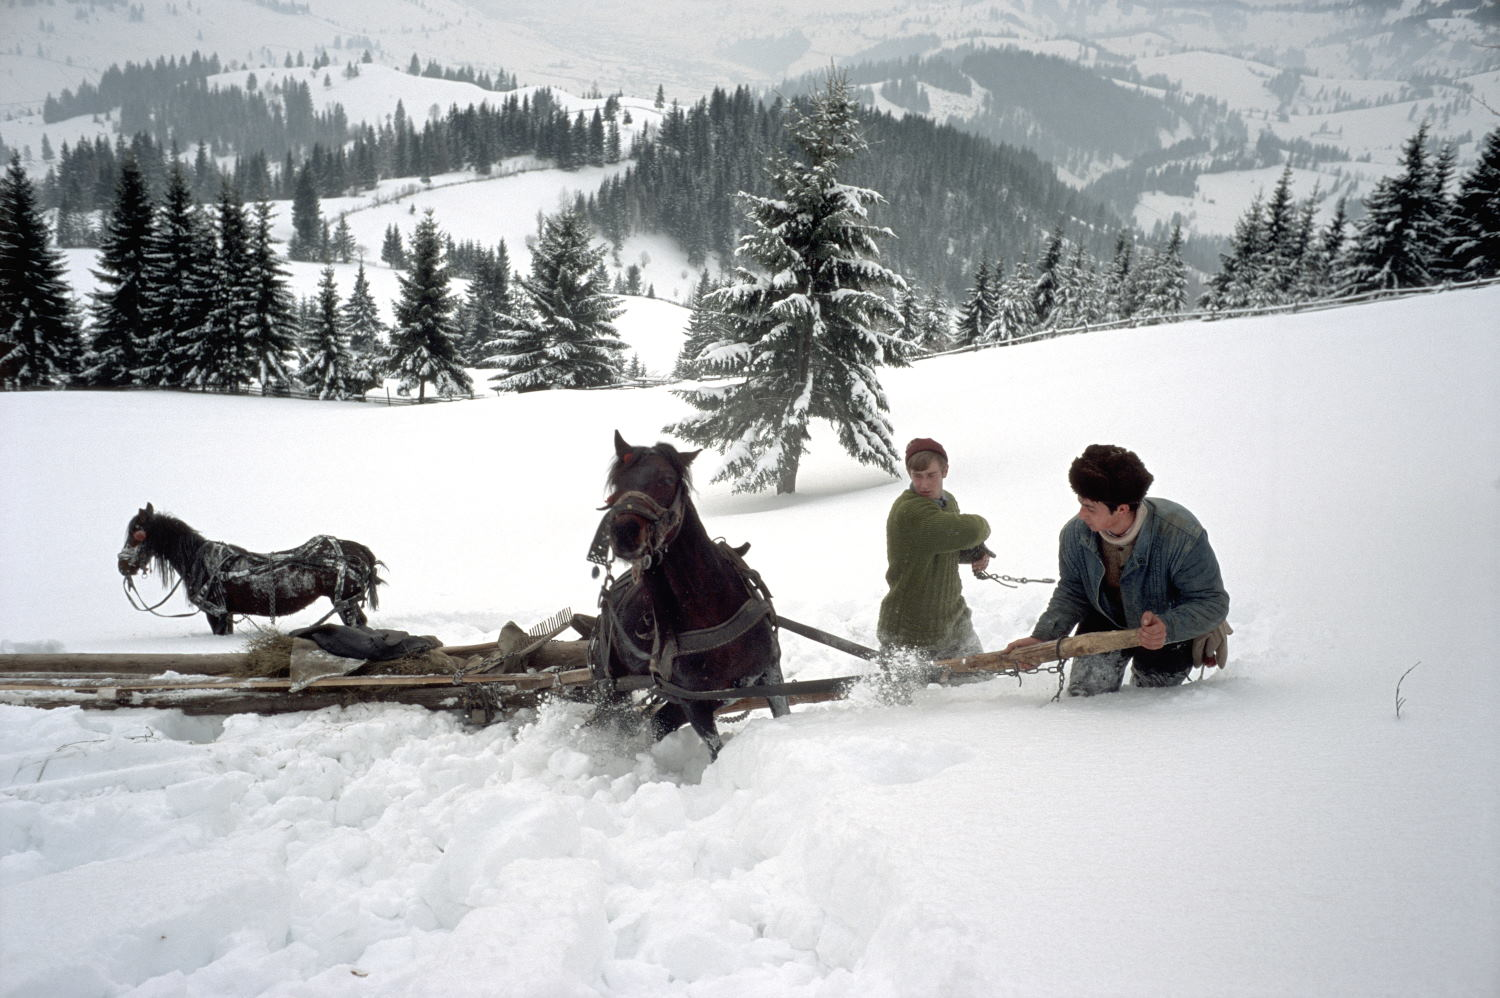 Stuck in thigh deep snow with only one horse harnessed to the sledge (Leica M6 and 35mm f/1.4 Summilux)